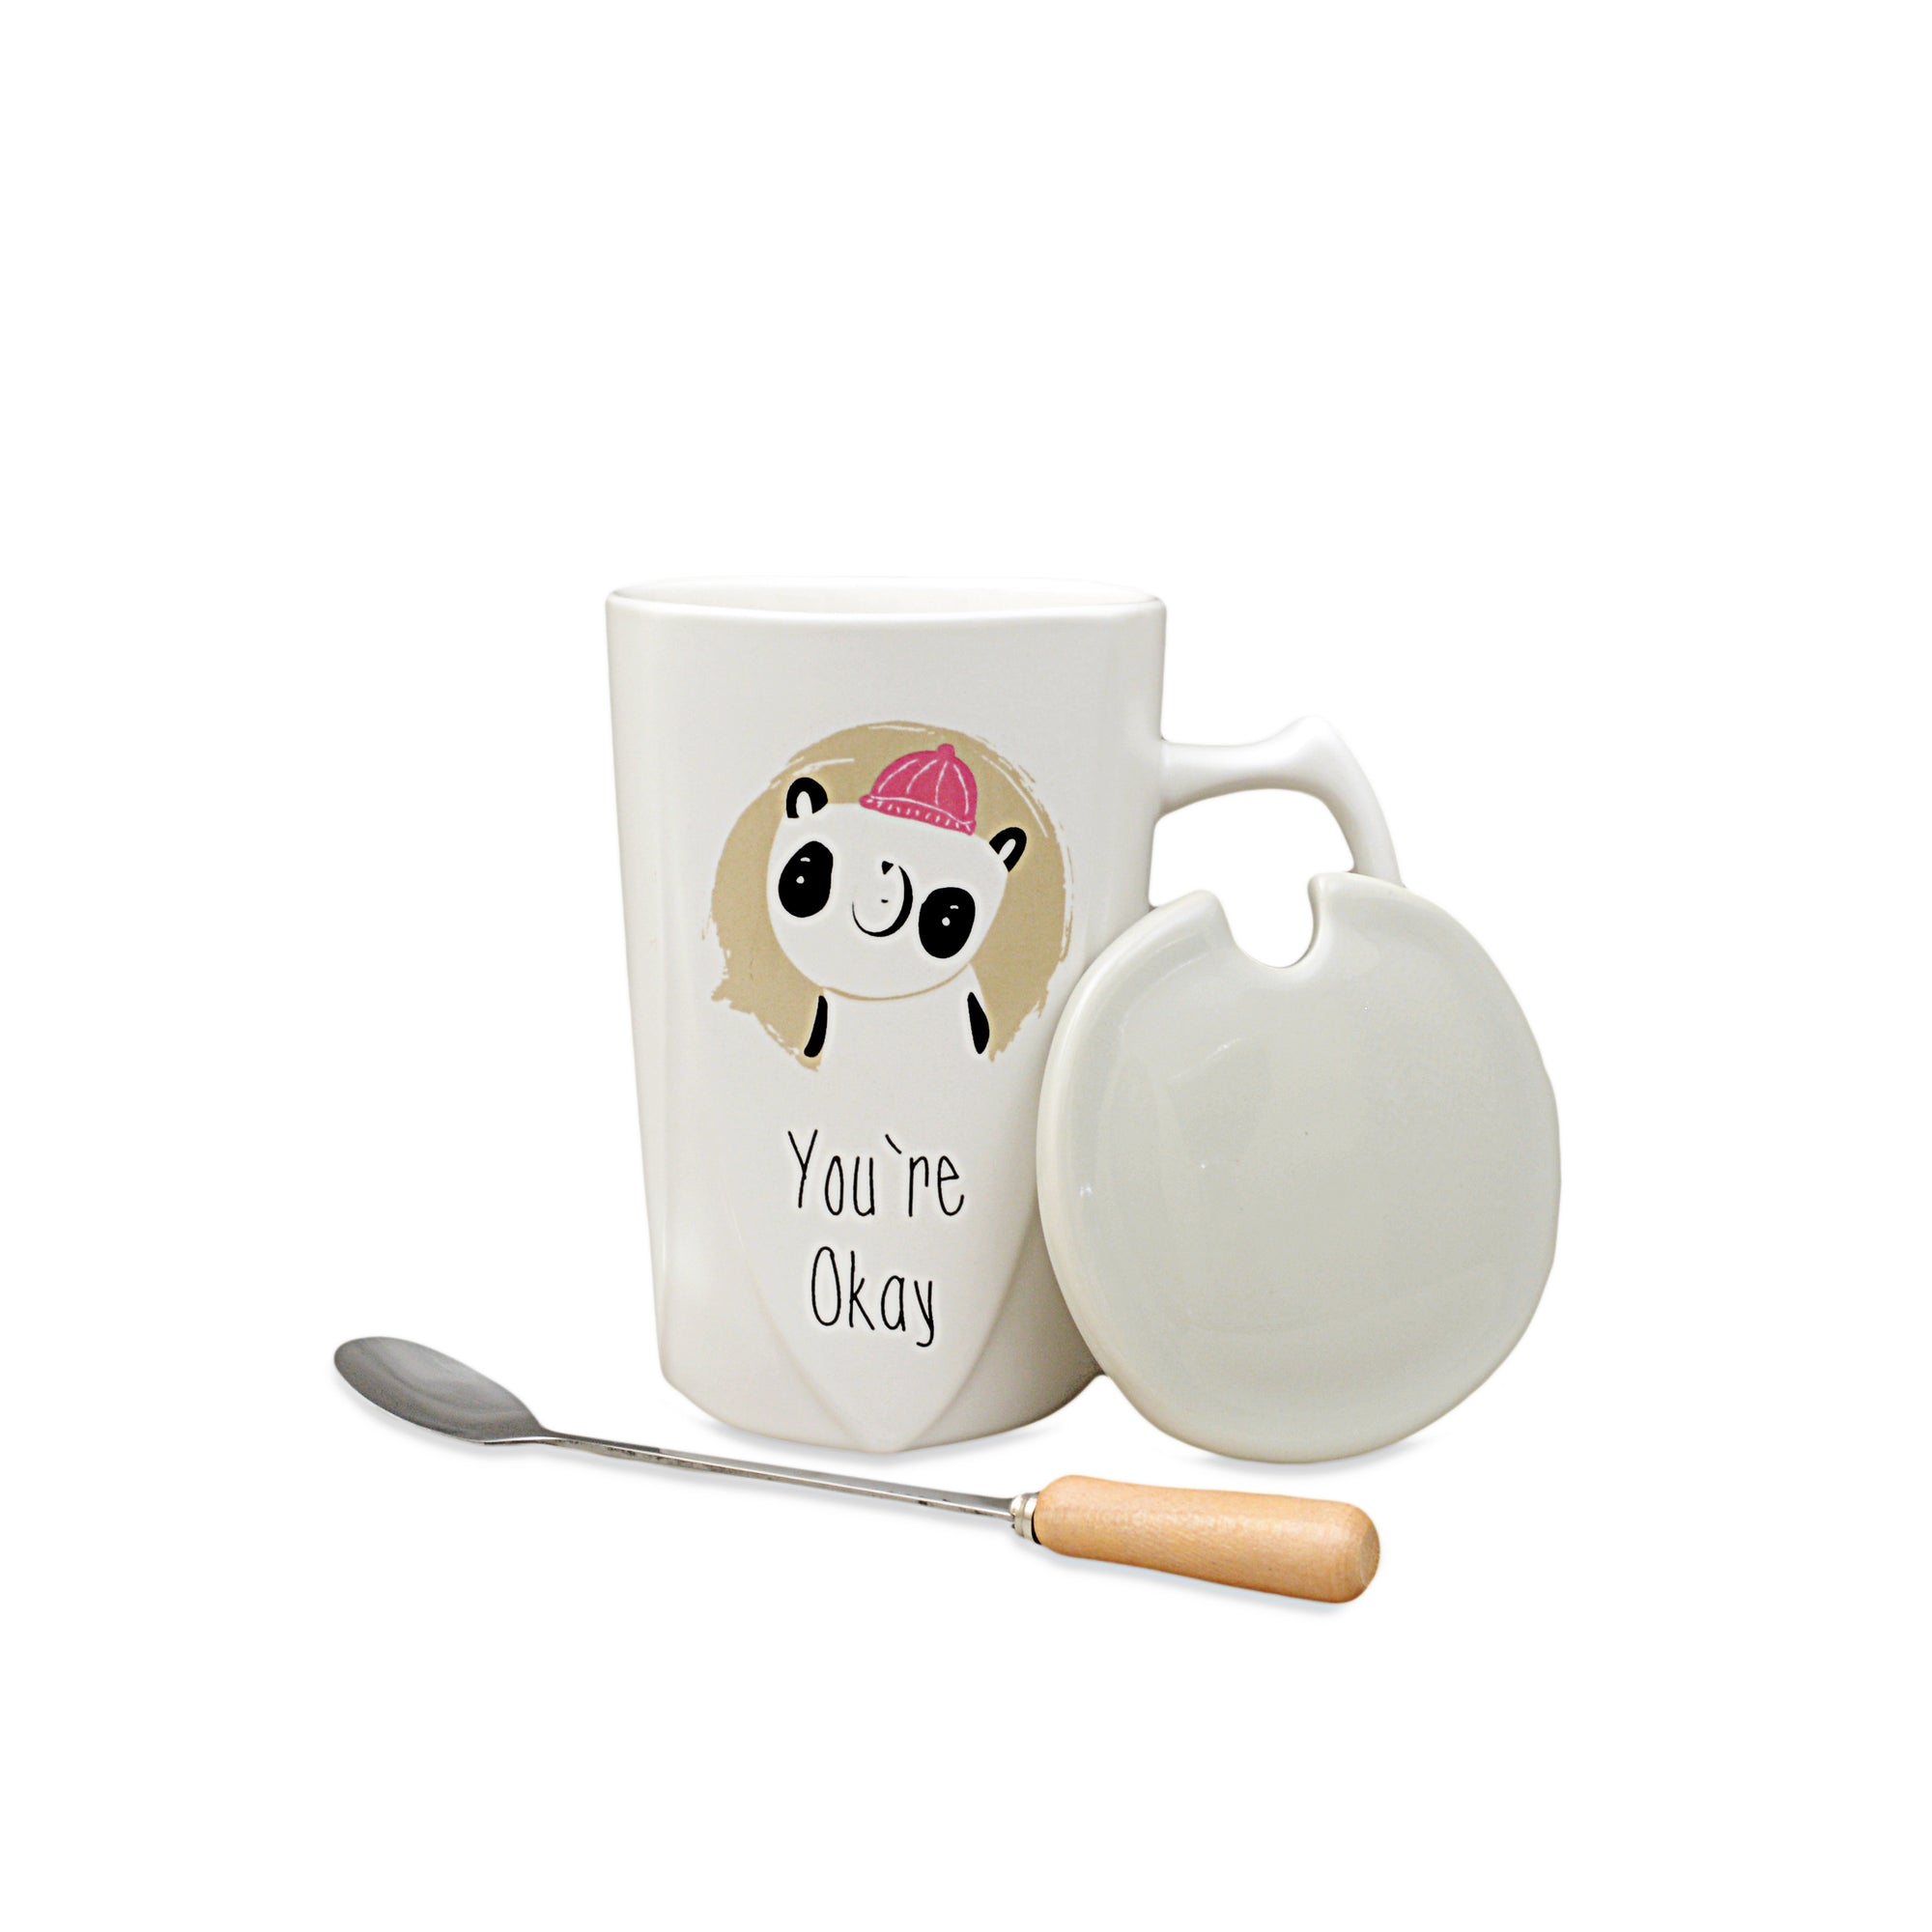 White & Grey Designed Ceramic Mug With Lid And Spoon